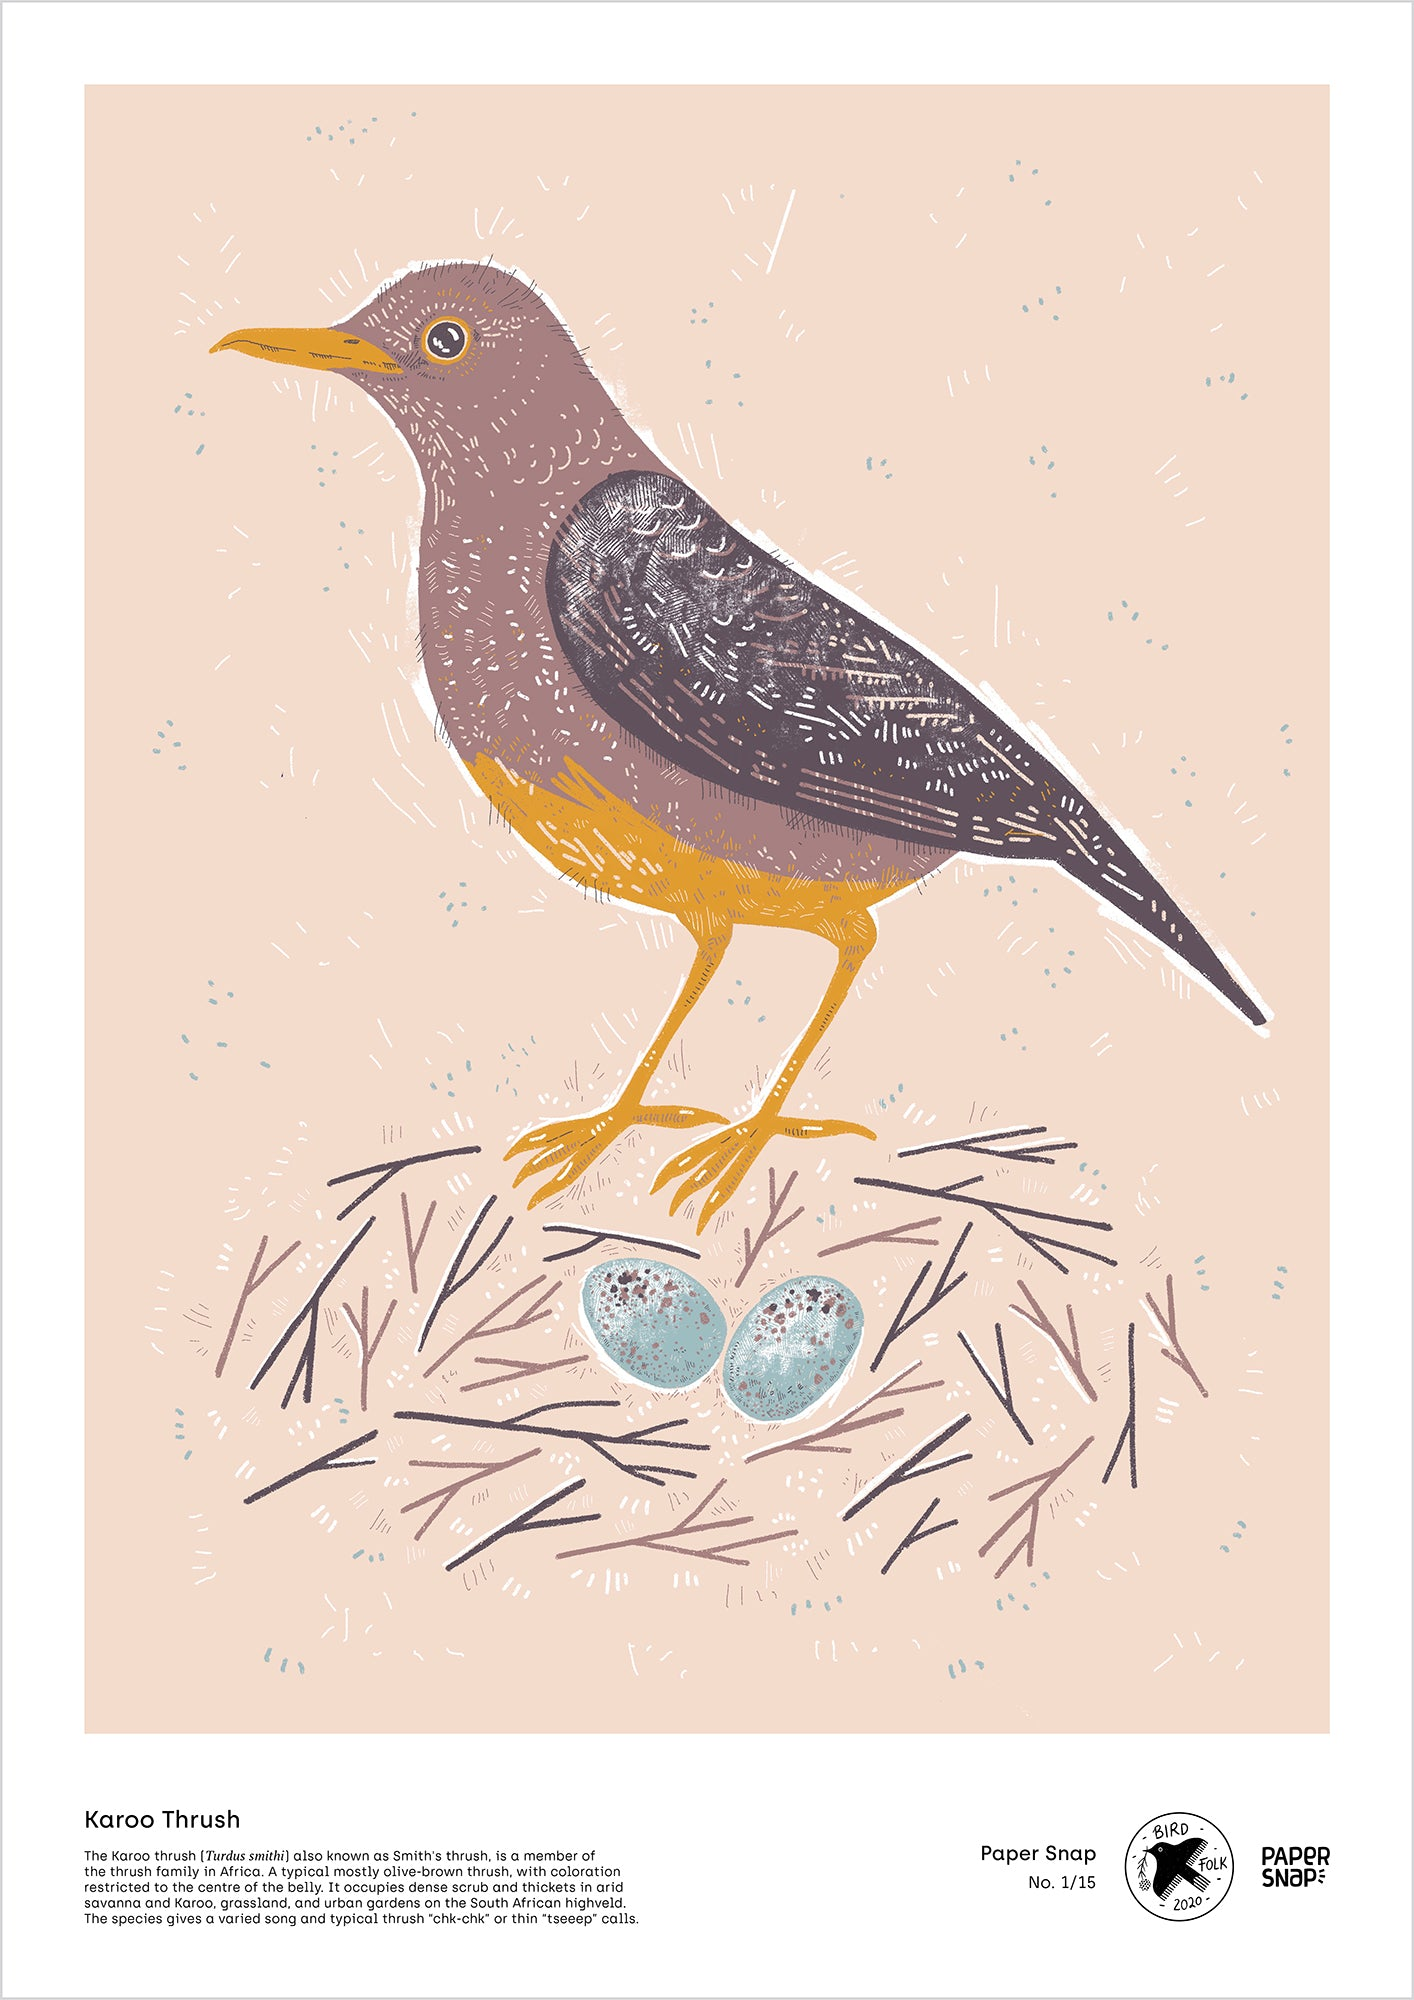 Karoo Thrush - A2 print by Paper Snap